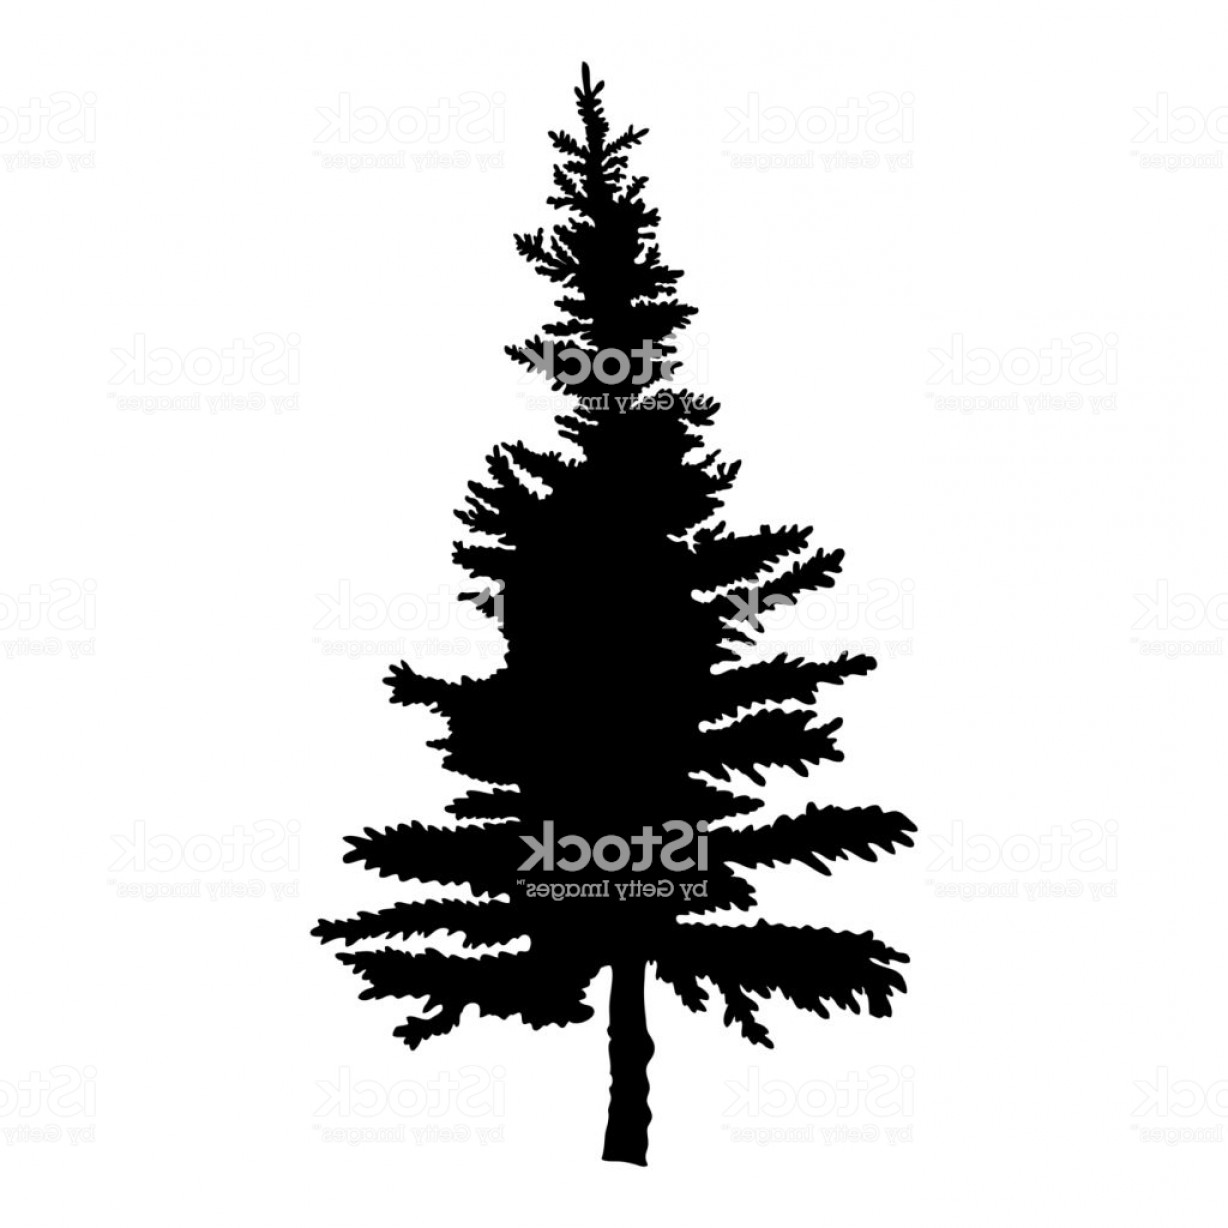 Pine Tree Vector Format: Pine Tree Isolated On White Background Silhouette Woods And Fir Tree For Your Design Gm